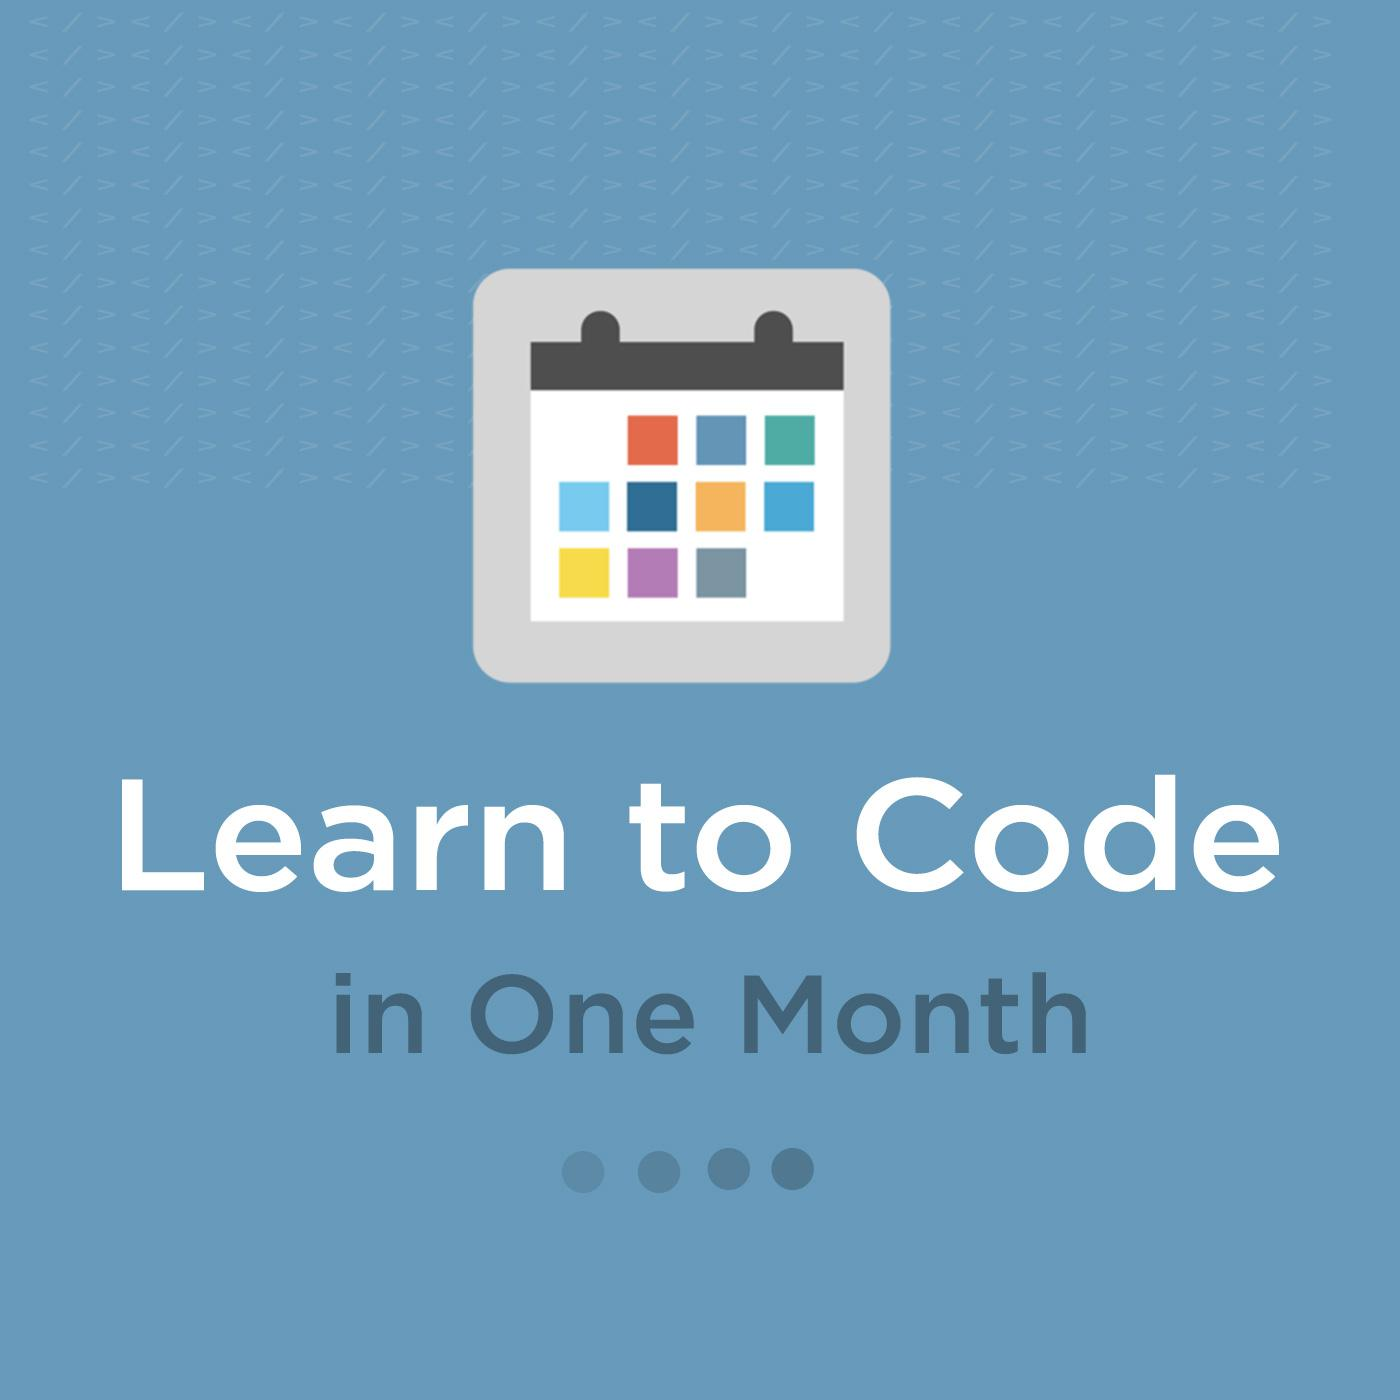 Learn to Code in One Month (podcast) - Learn to Code